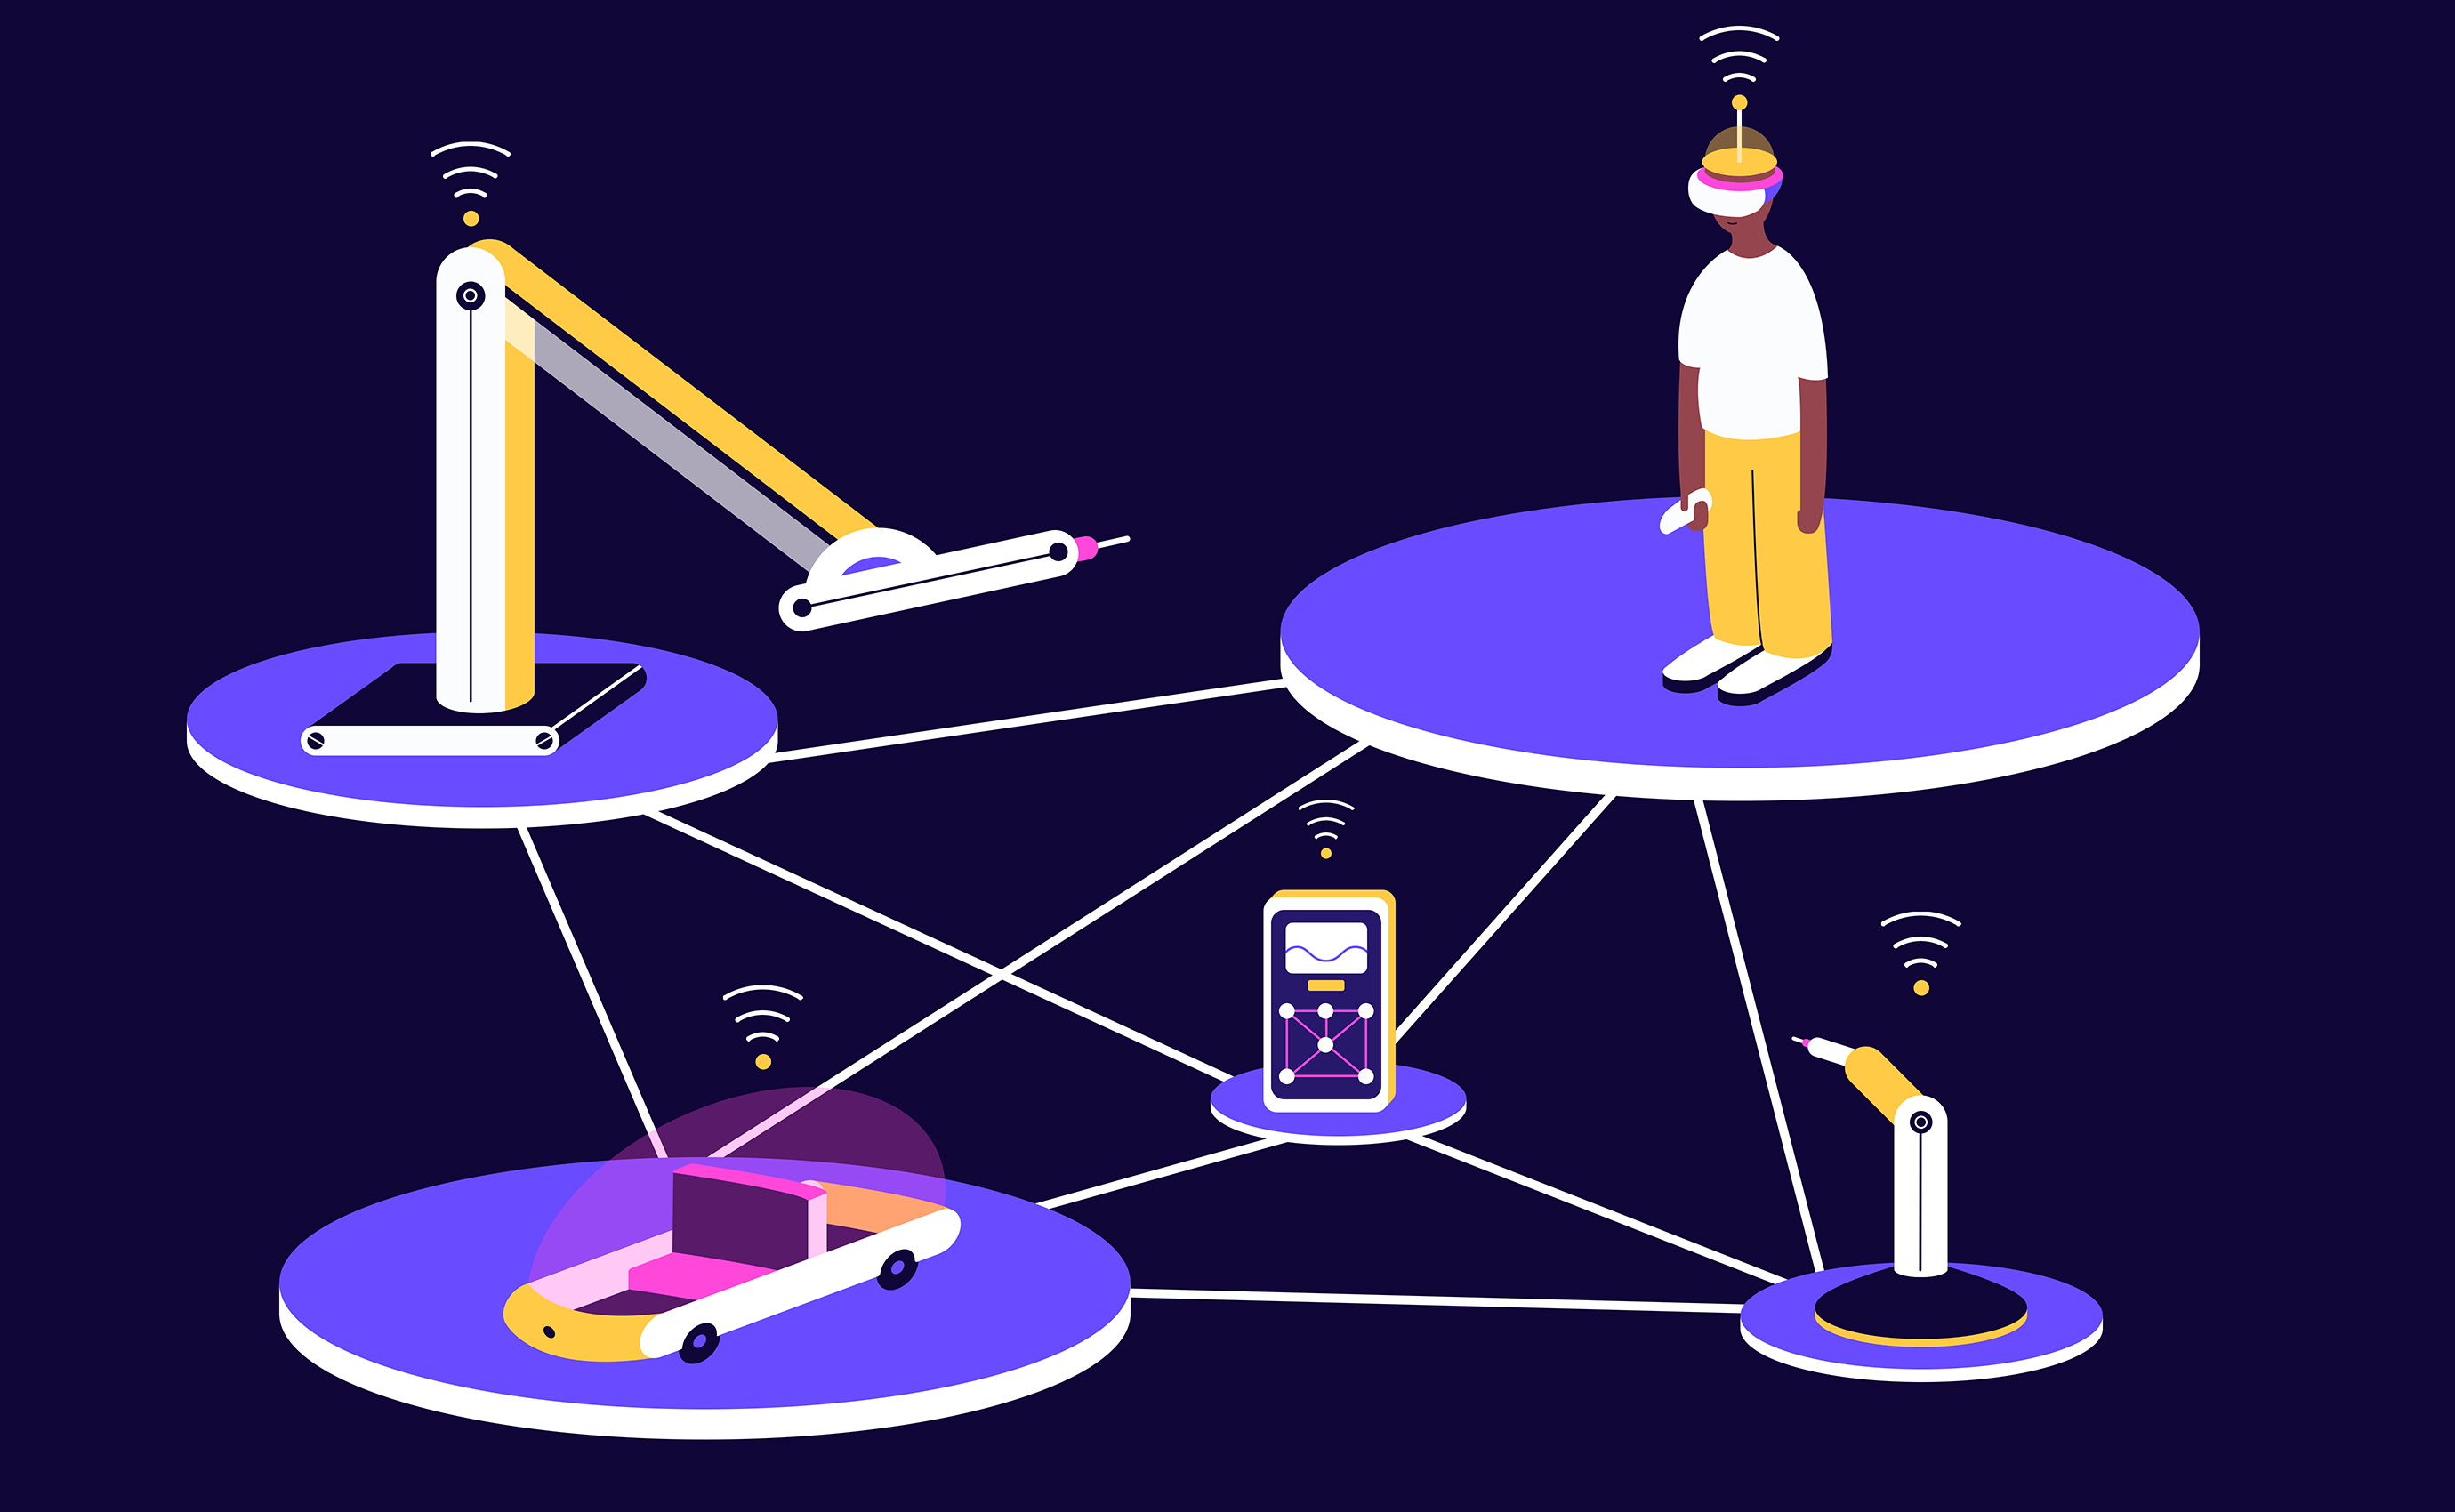 Companies fed up with crappy Wi-Fi are deploying 5G instead - MIT